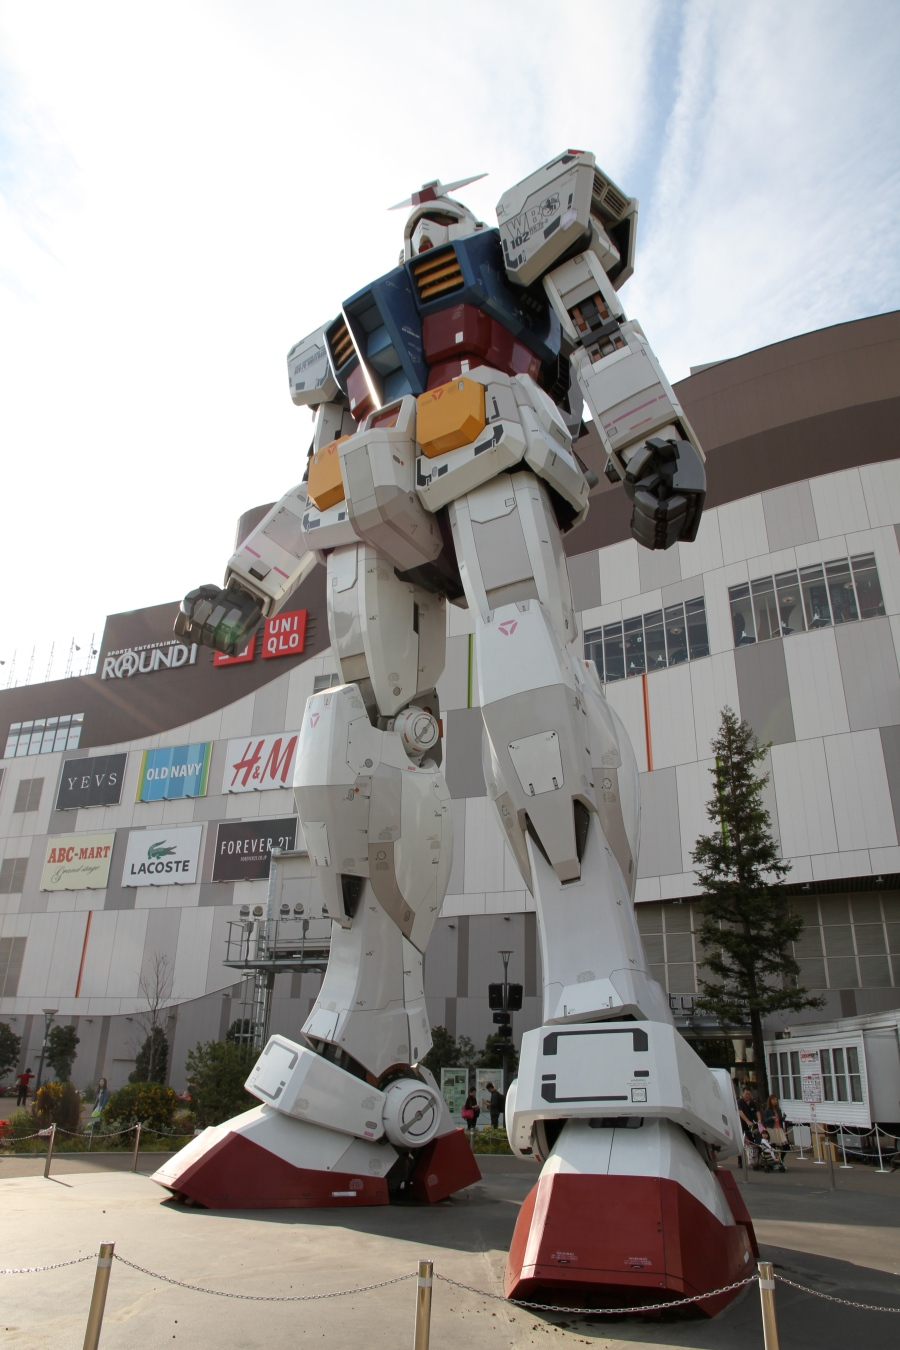 Badass robot at Odaiba